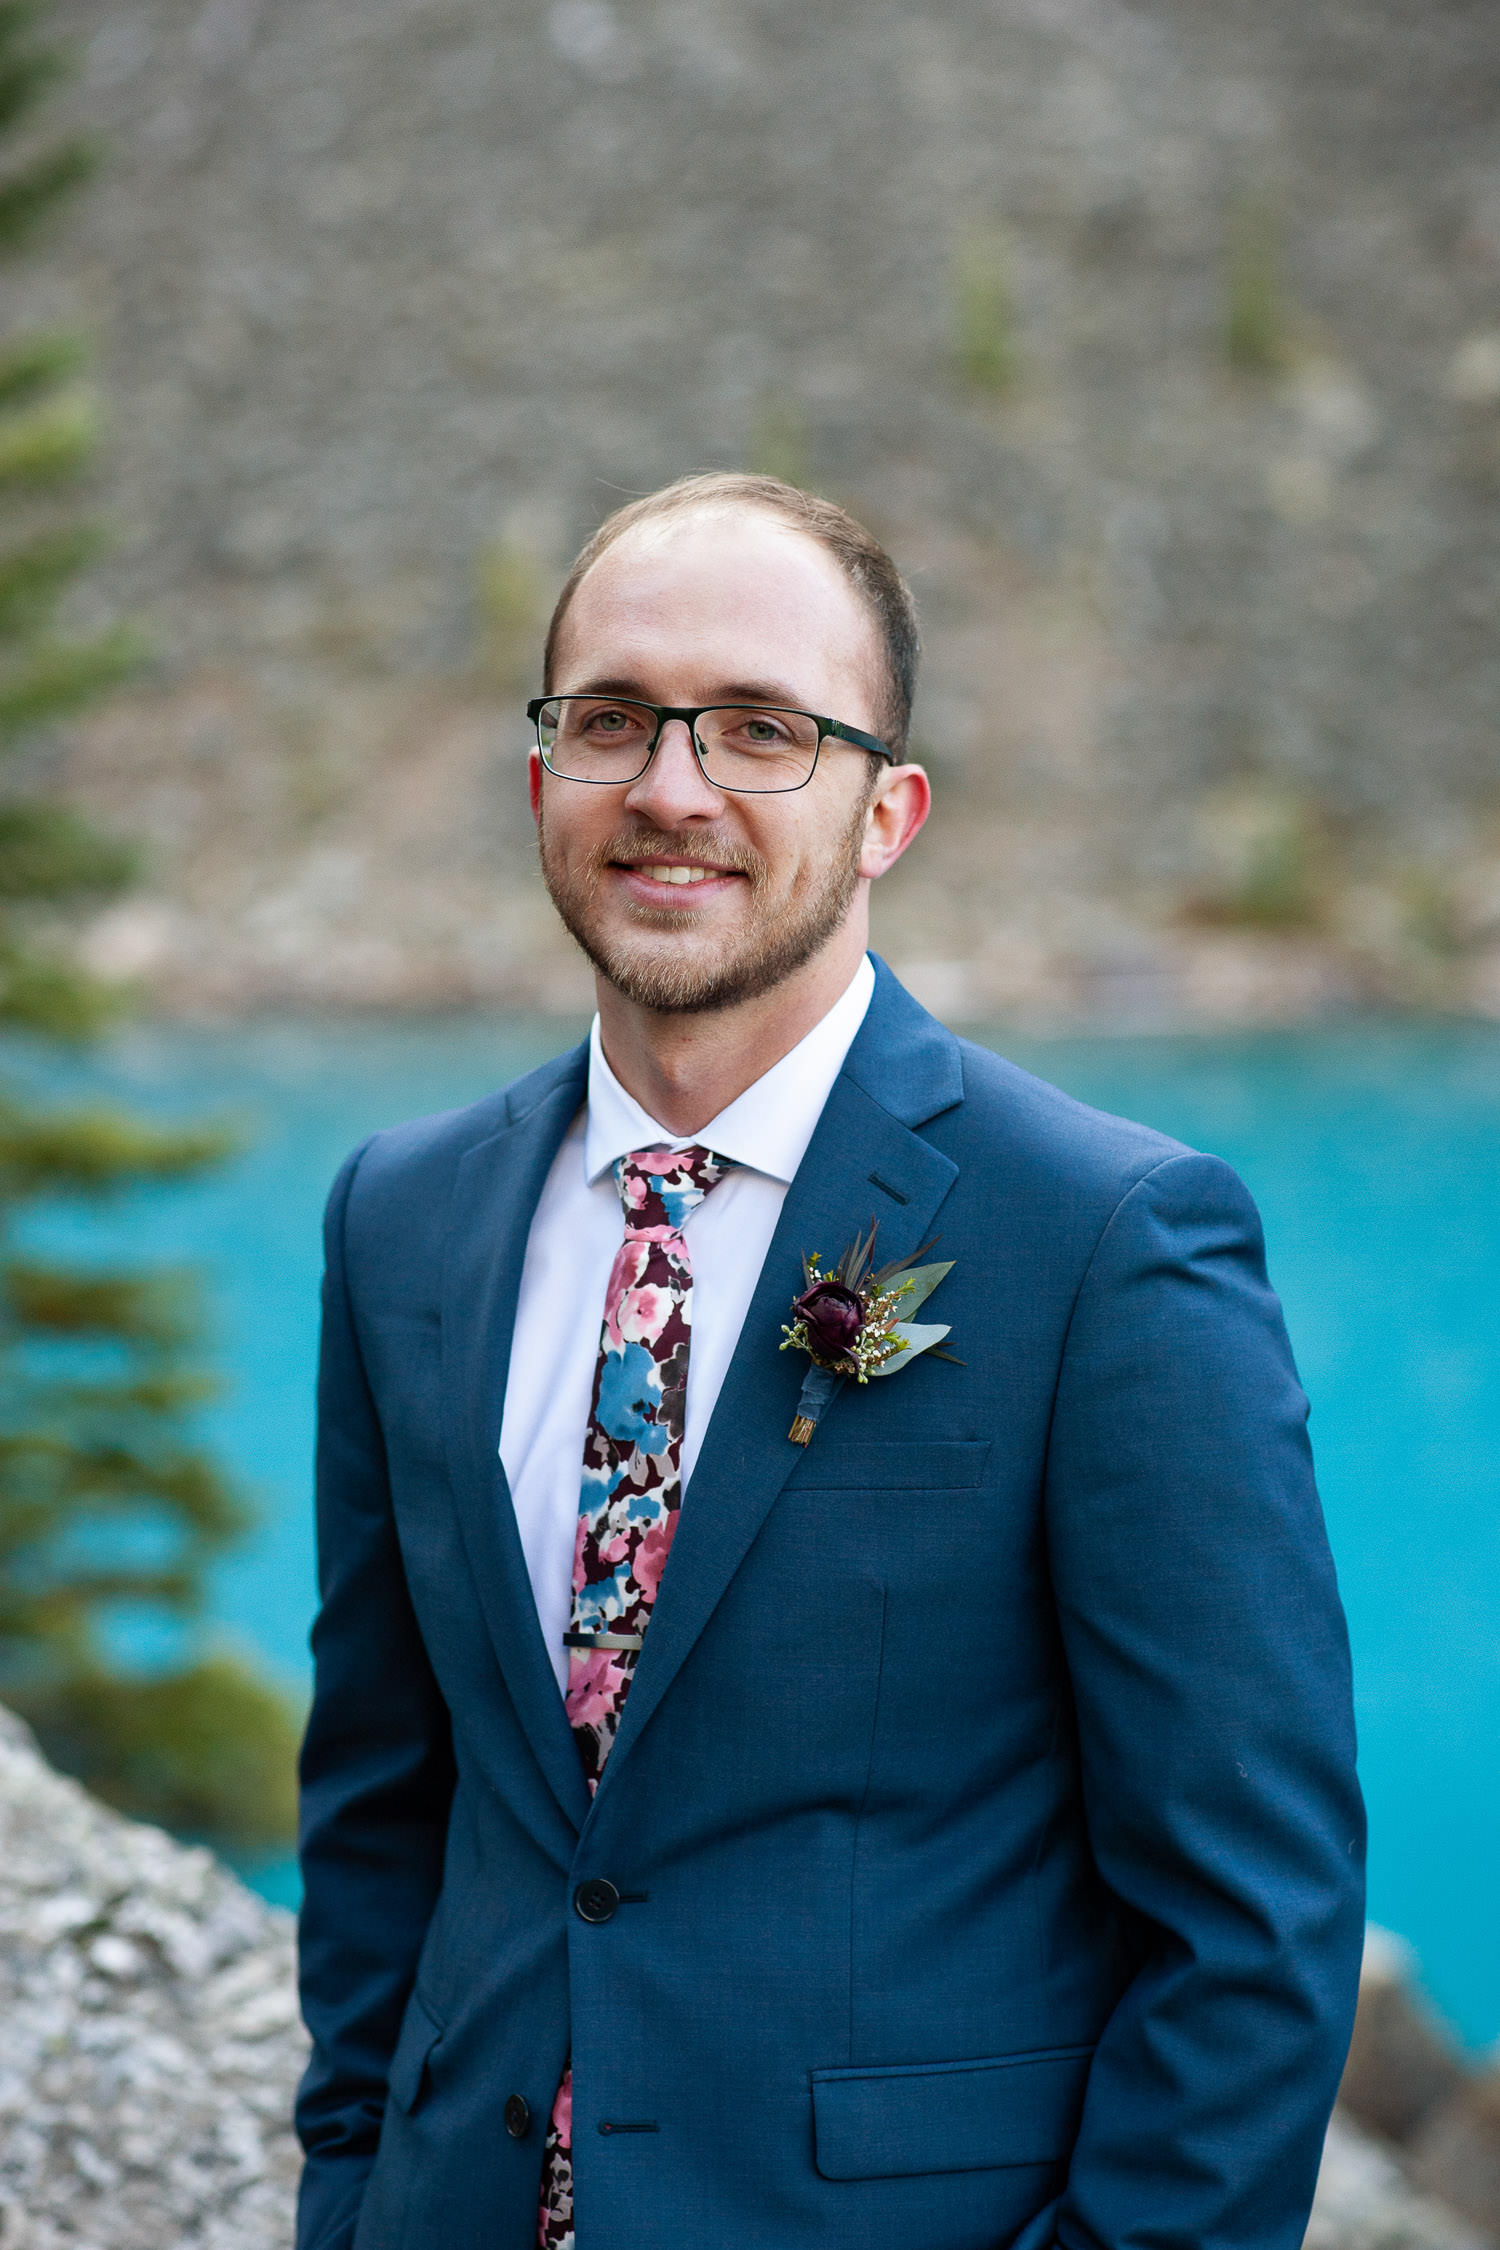 Groom at Moraine Lake captured by Tara Whittaker Photography